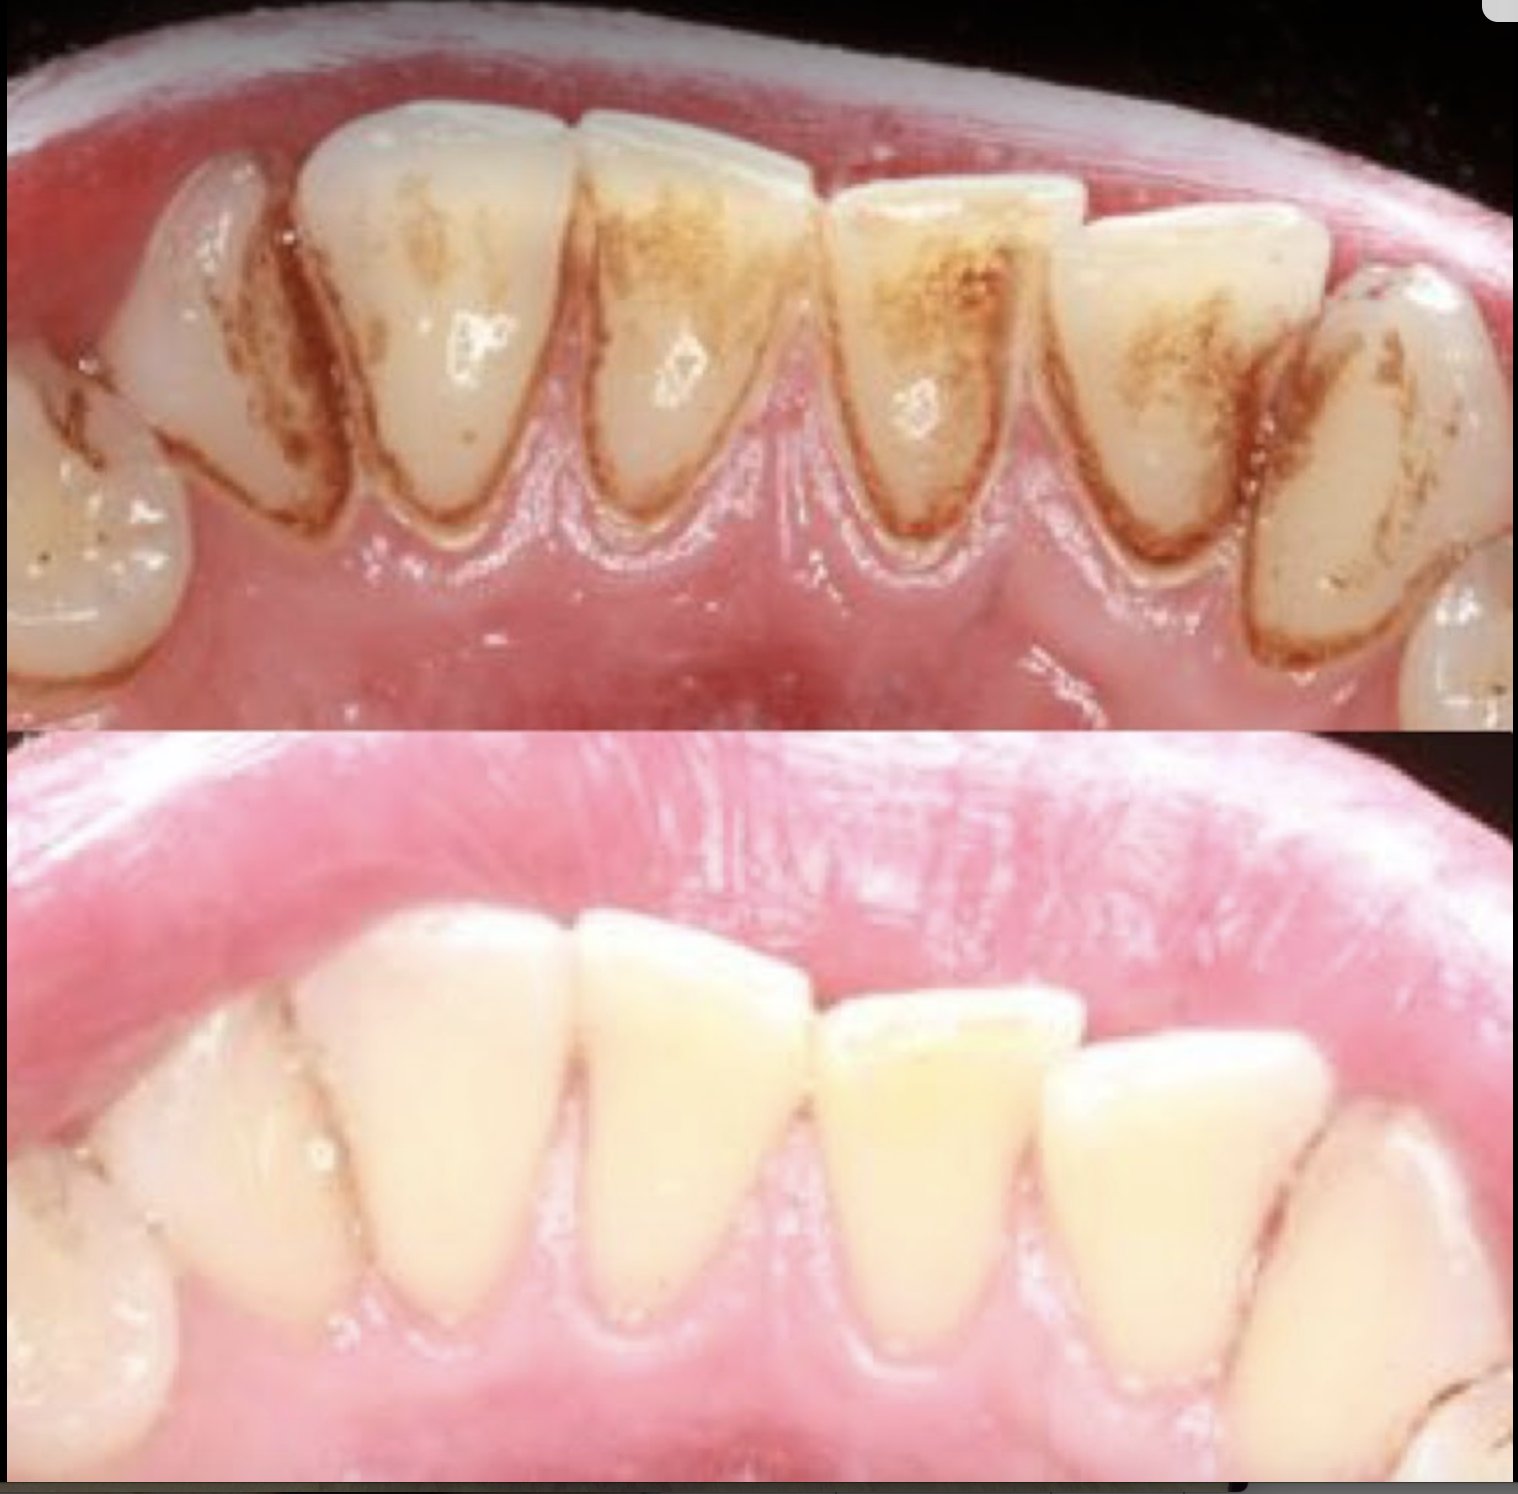 Before and after professional dental cleaning